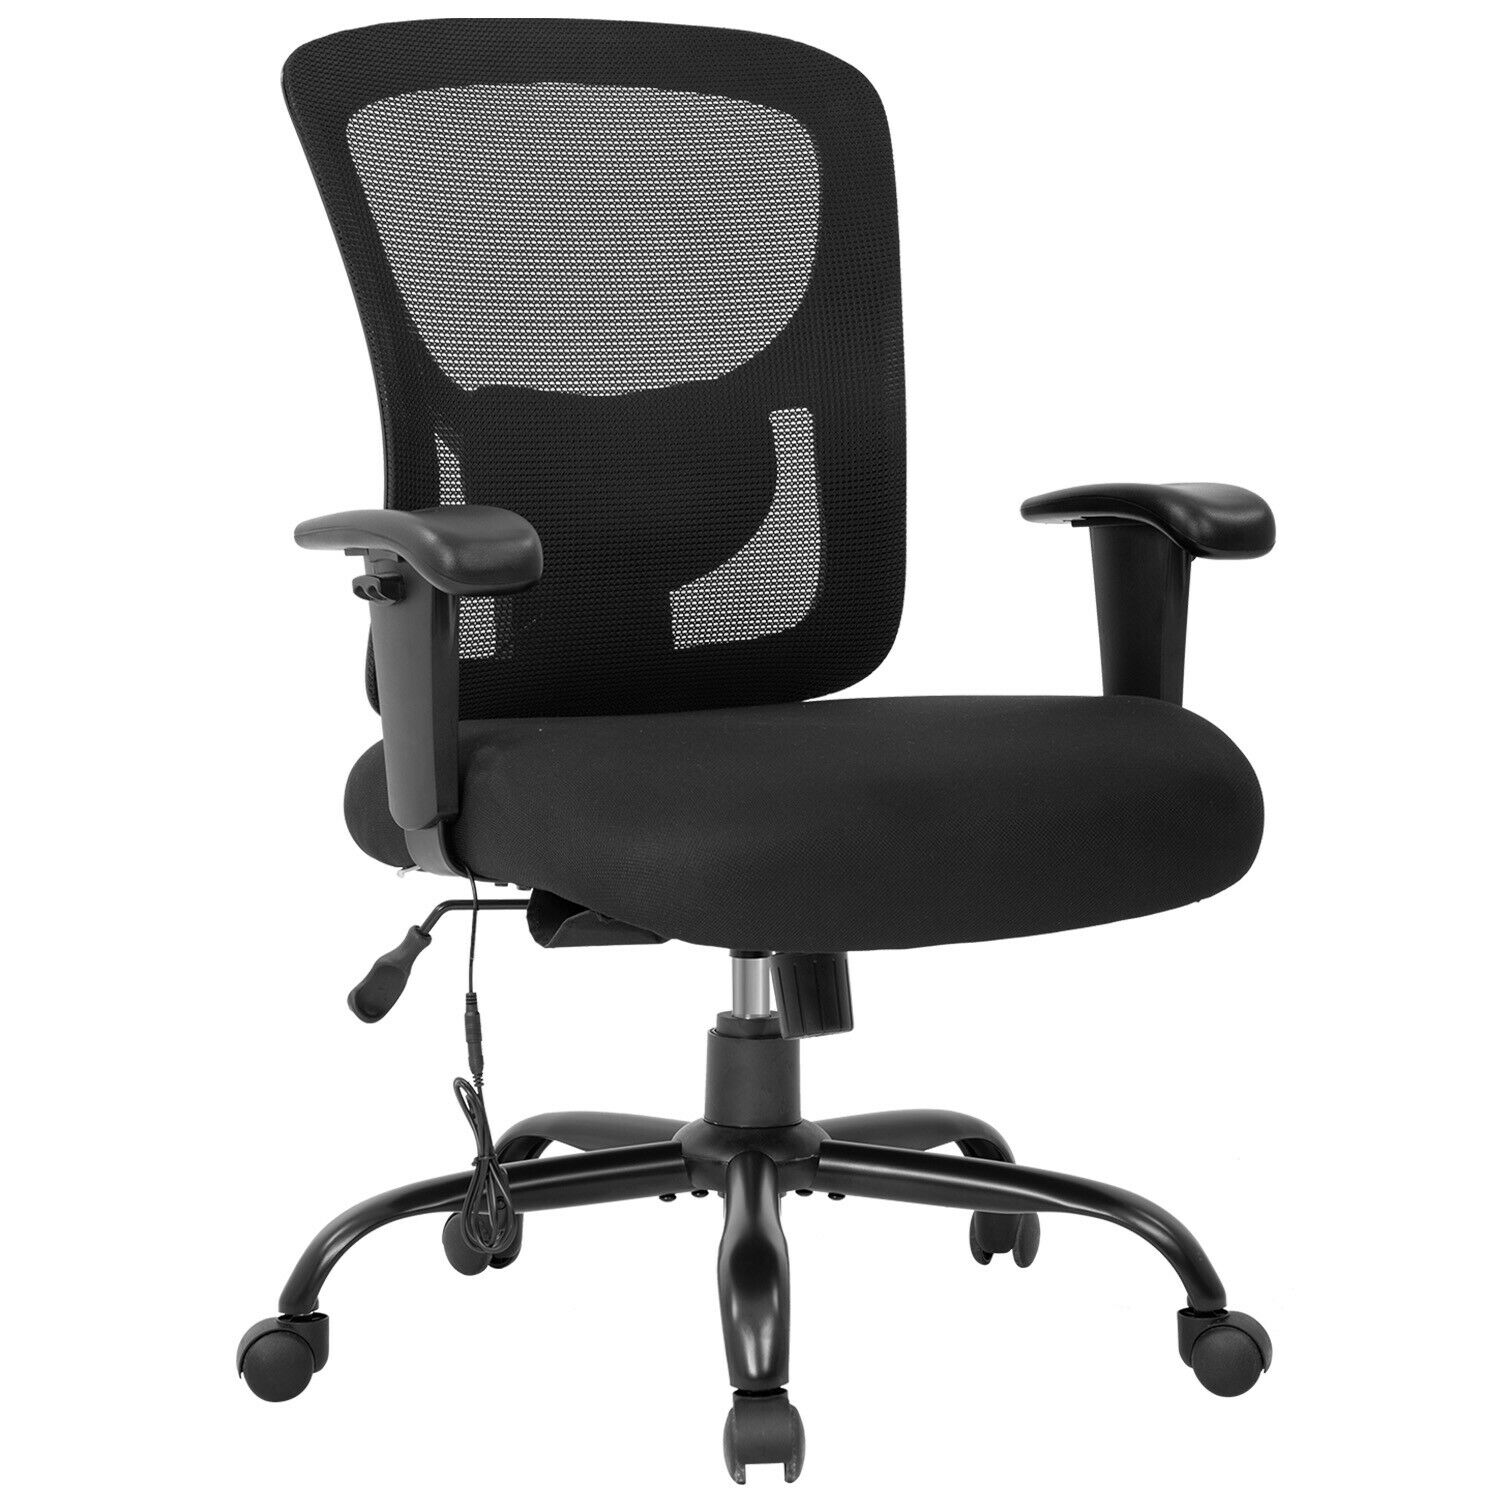 Big and Tall Office Chair 400lbs Wide Seat Mesh Desk Chair Massage Rolling Swive Business & Industrial